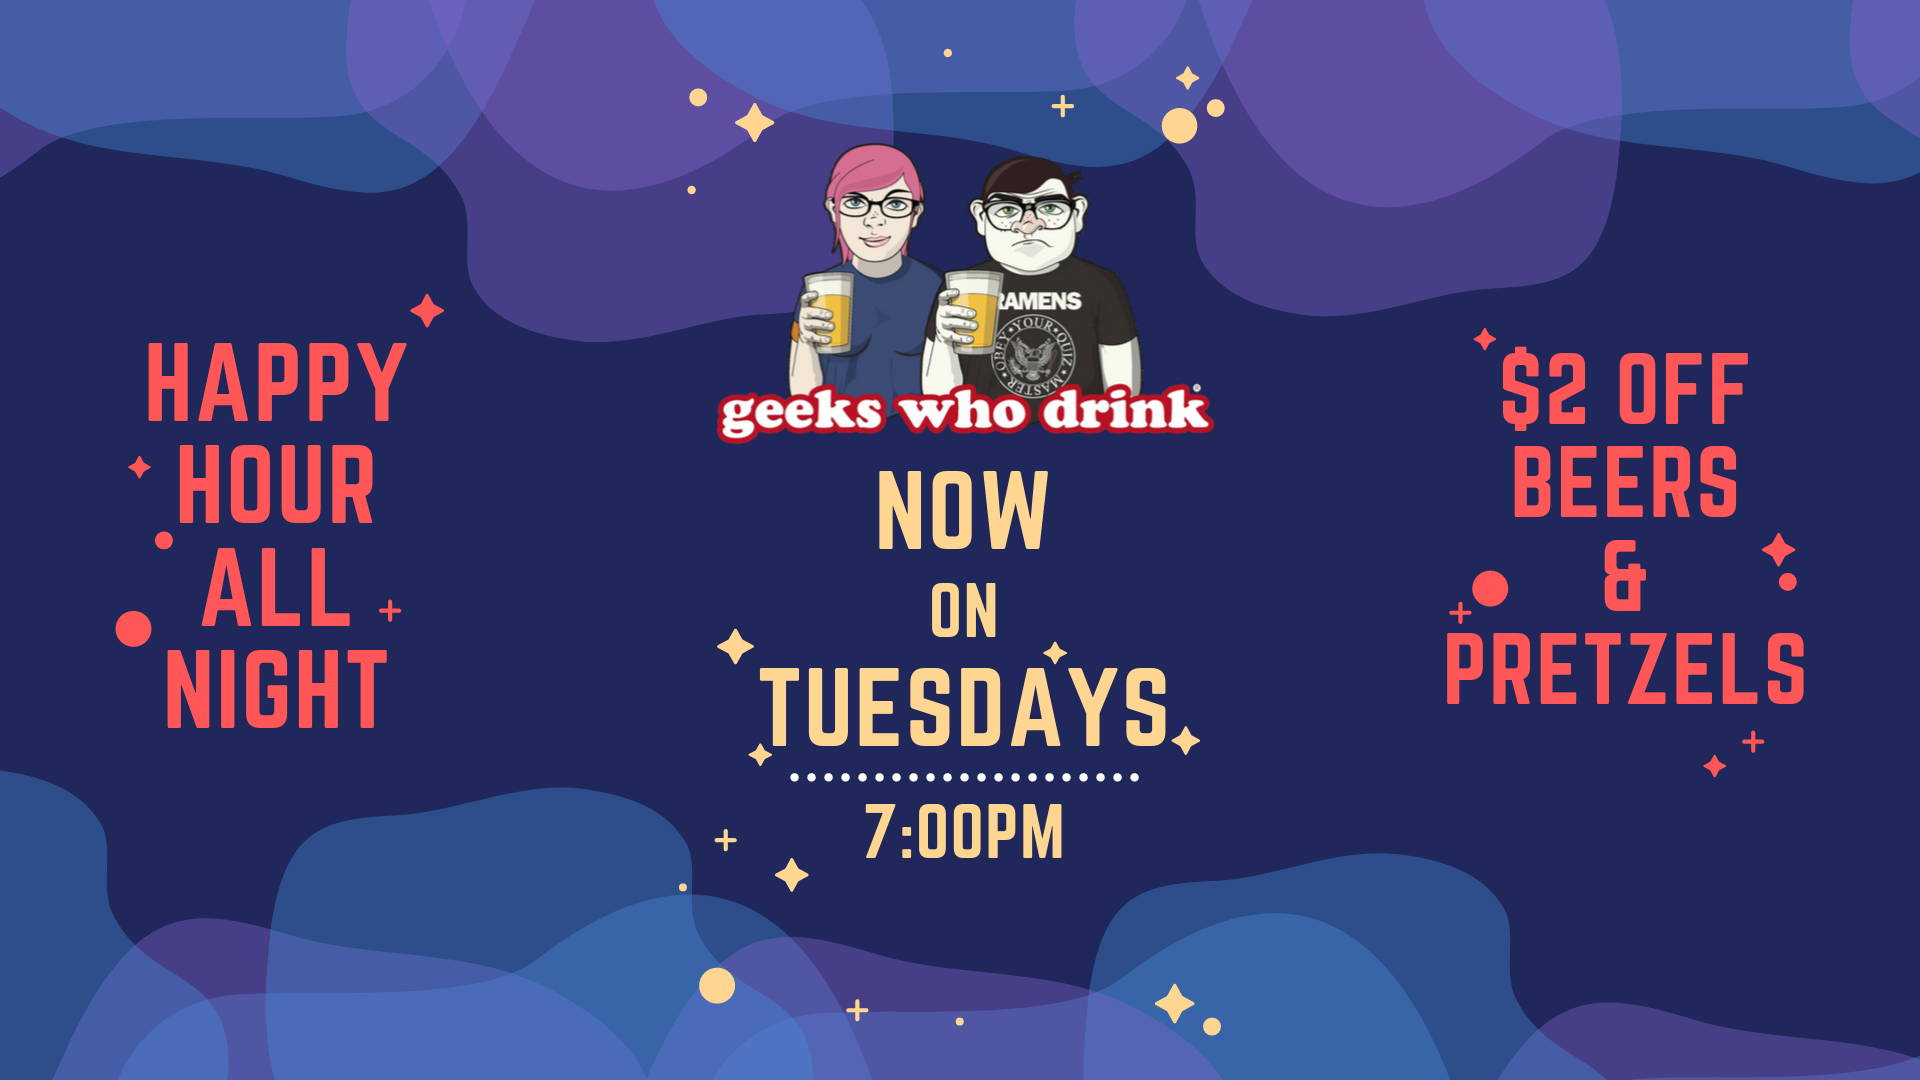 Geeks Who Drink on Tuesdays at 7:00pm